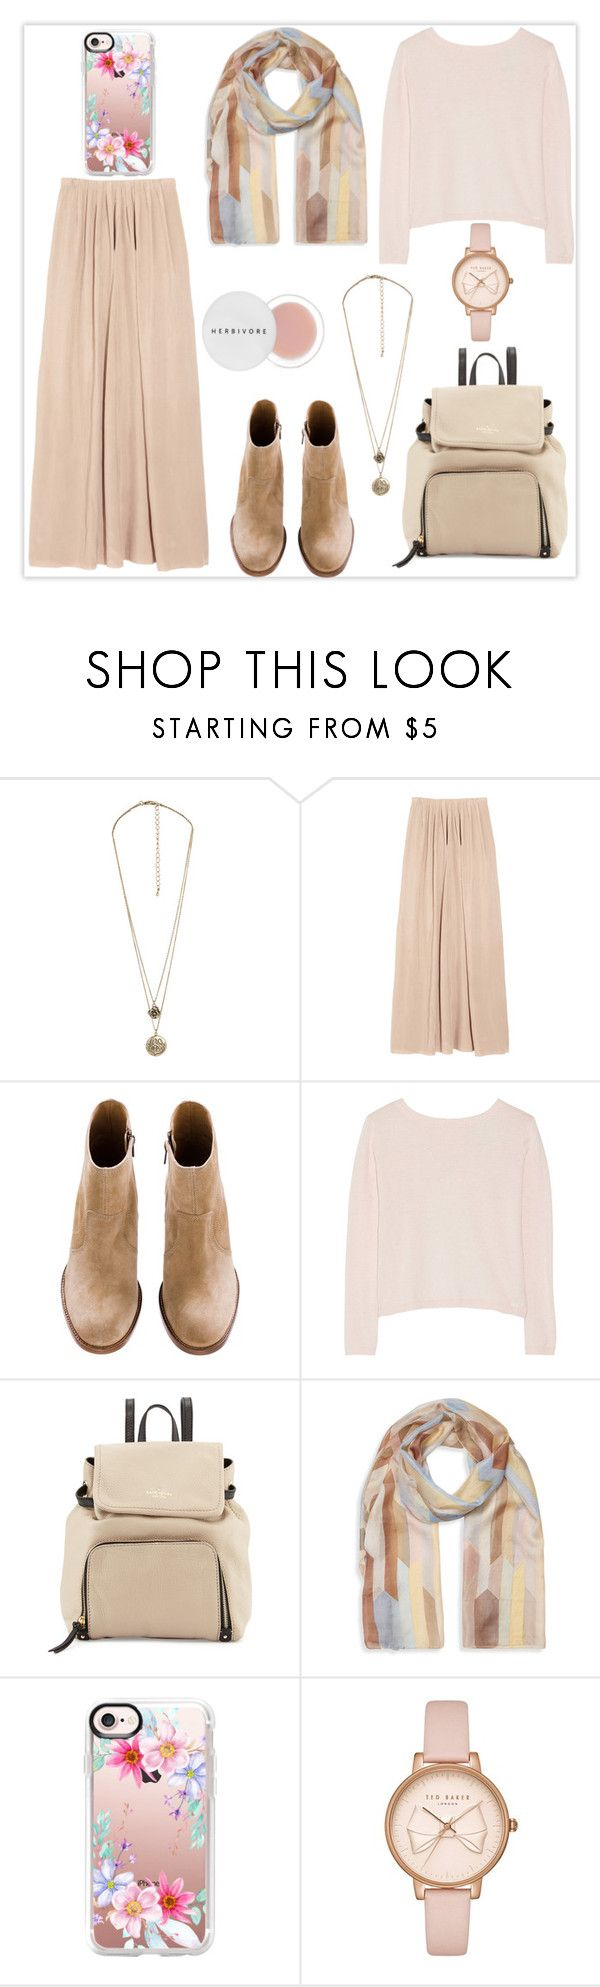 """P a s t e l"" by haranata ❤ liked on Polyvore featuring Forever 21, See by Chloé, Banjo & Matilda, Kate Spade, Laura Ashley, Casetify, Ted Baker, Herbivore, Fall and pastel"